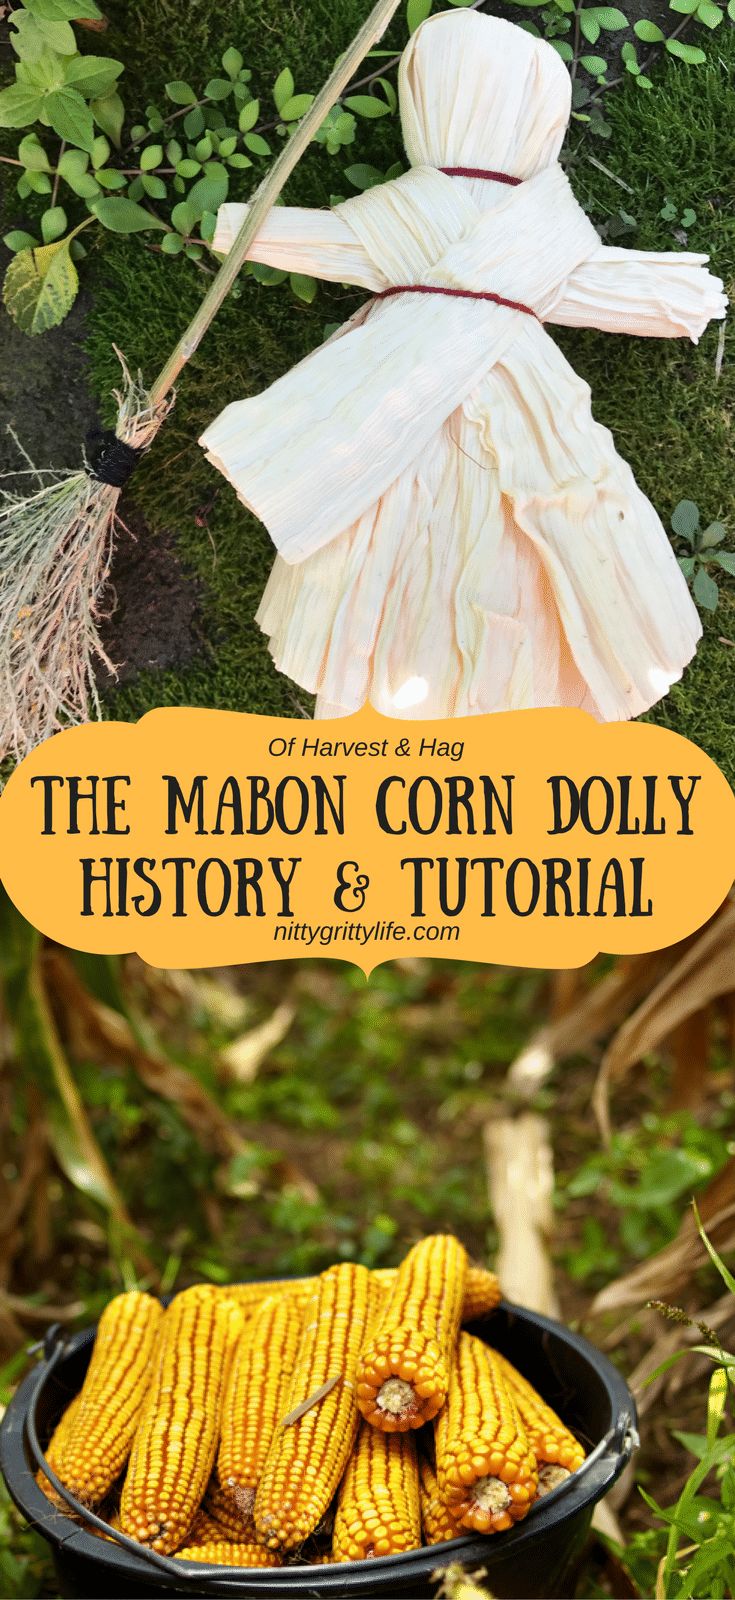 Celebrate fall and the harvest season with a beautiful Mabon corn dolly.